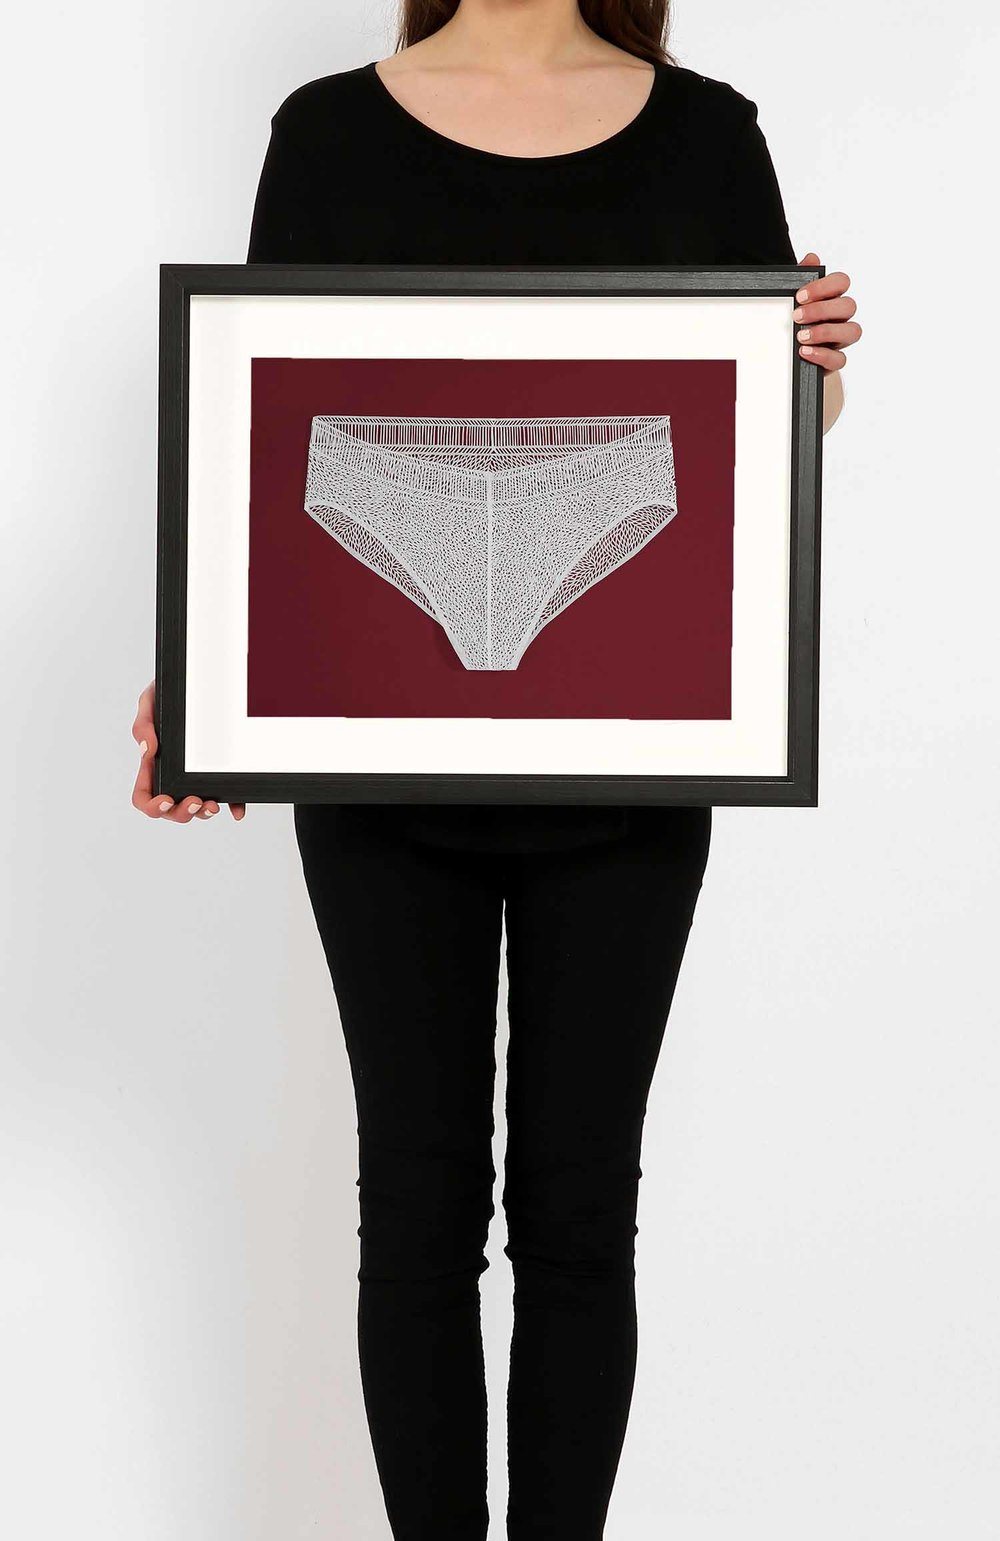 Underwear White Large on Red_Framed.jpg